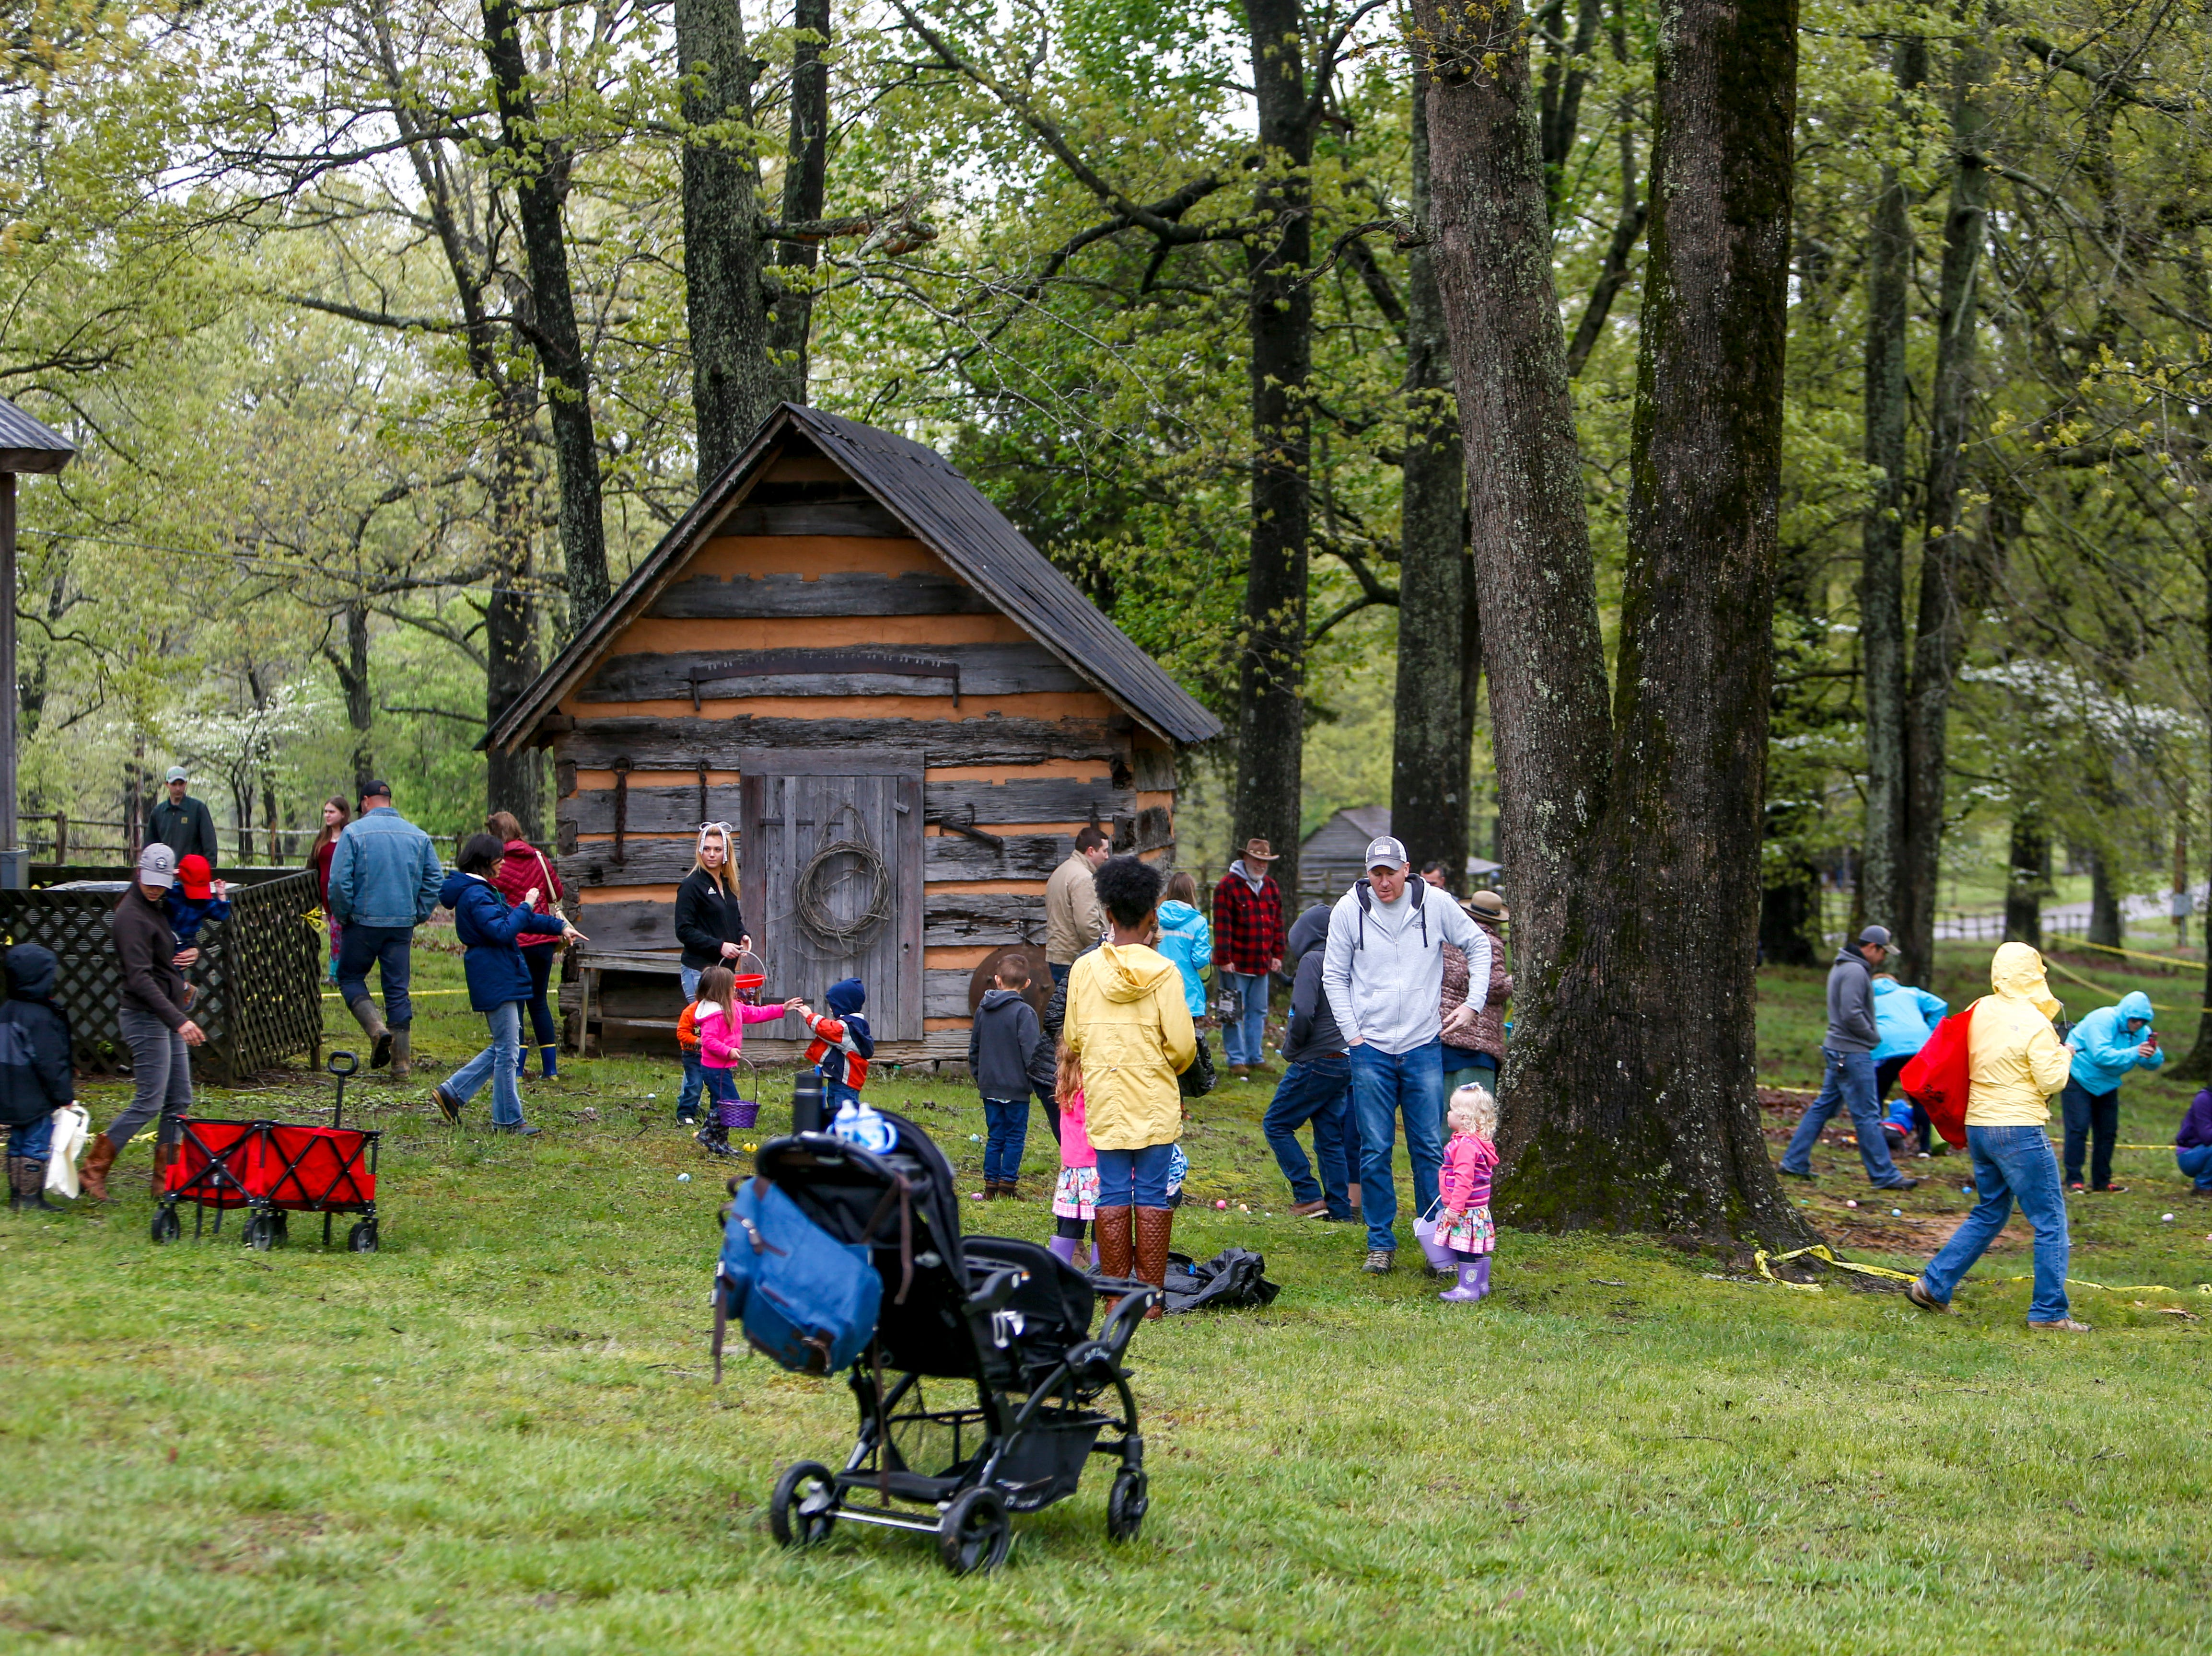 Families dot the grass under the trees in search of eggs at the annual Easter egg hunts at Historic Collinsville in Clarksville, Tenn., on Saturday, April 20, 2019.